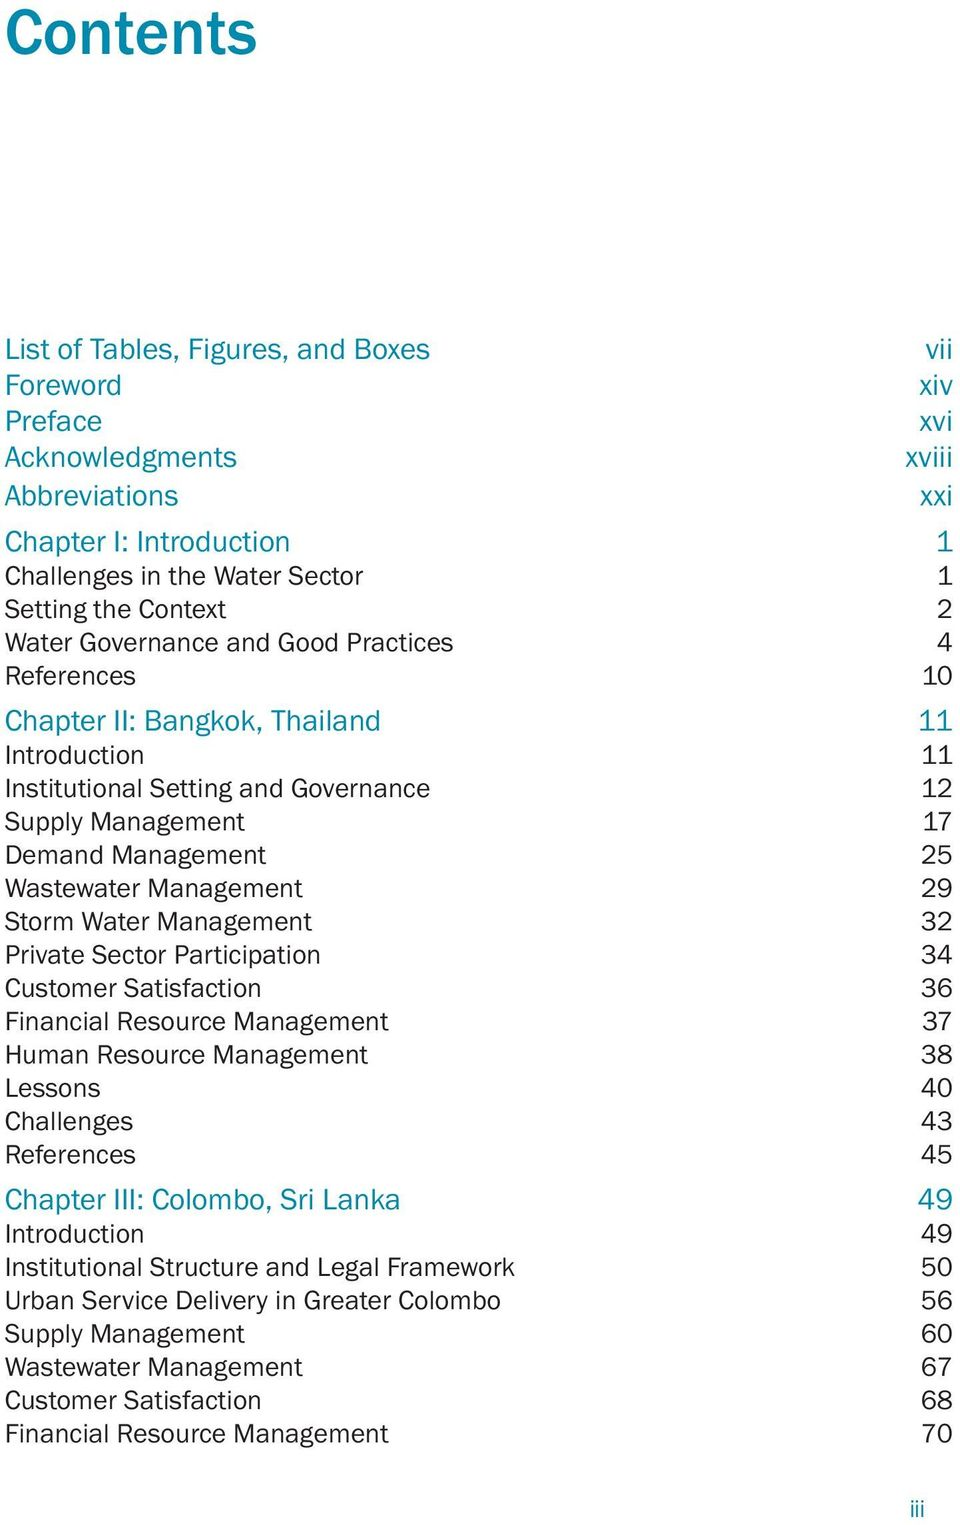 29 Storm Water Management 32 Private Sector Participation 34 Customer Satisfaction 36 Financial Resource Management 37 Human Resource Management 38 Lessons 40 Challenges 43 References 45 Chapter III: